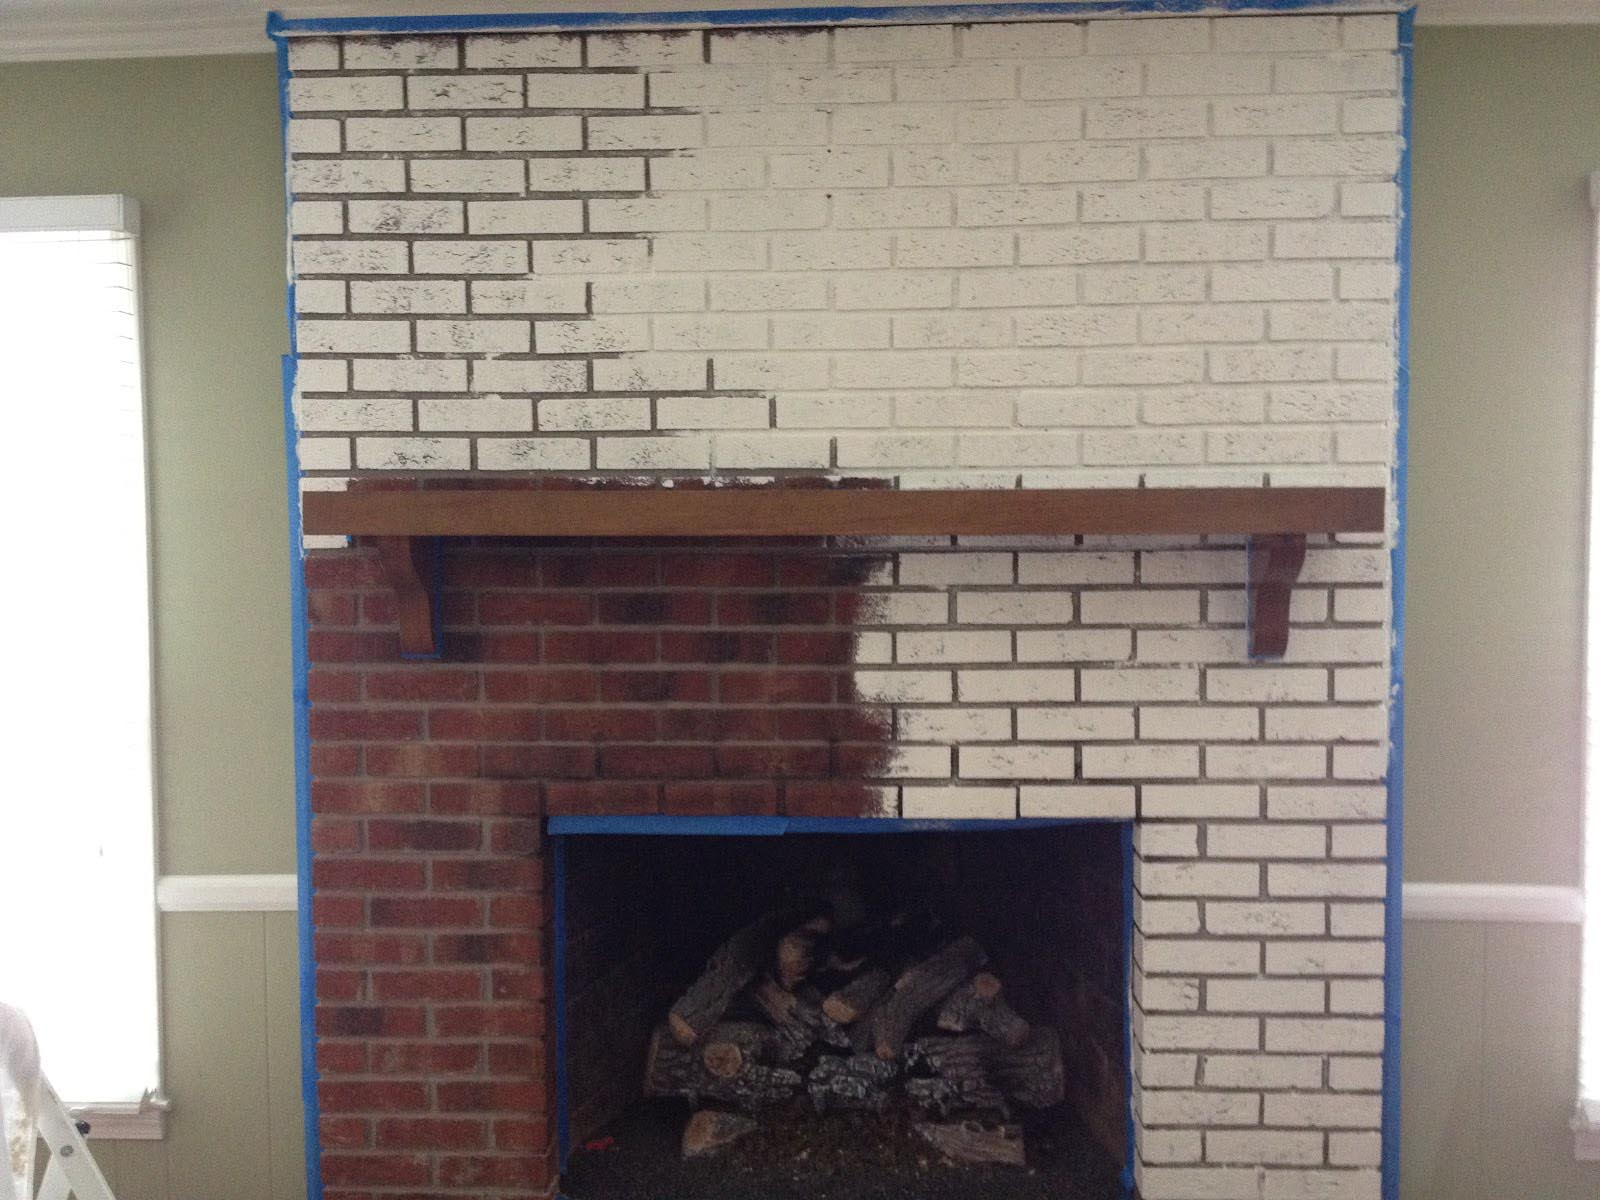 Fireplace brick paint colors fireplace designs Brick fireplace wall decorating ideas